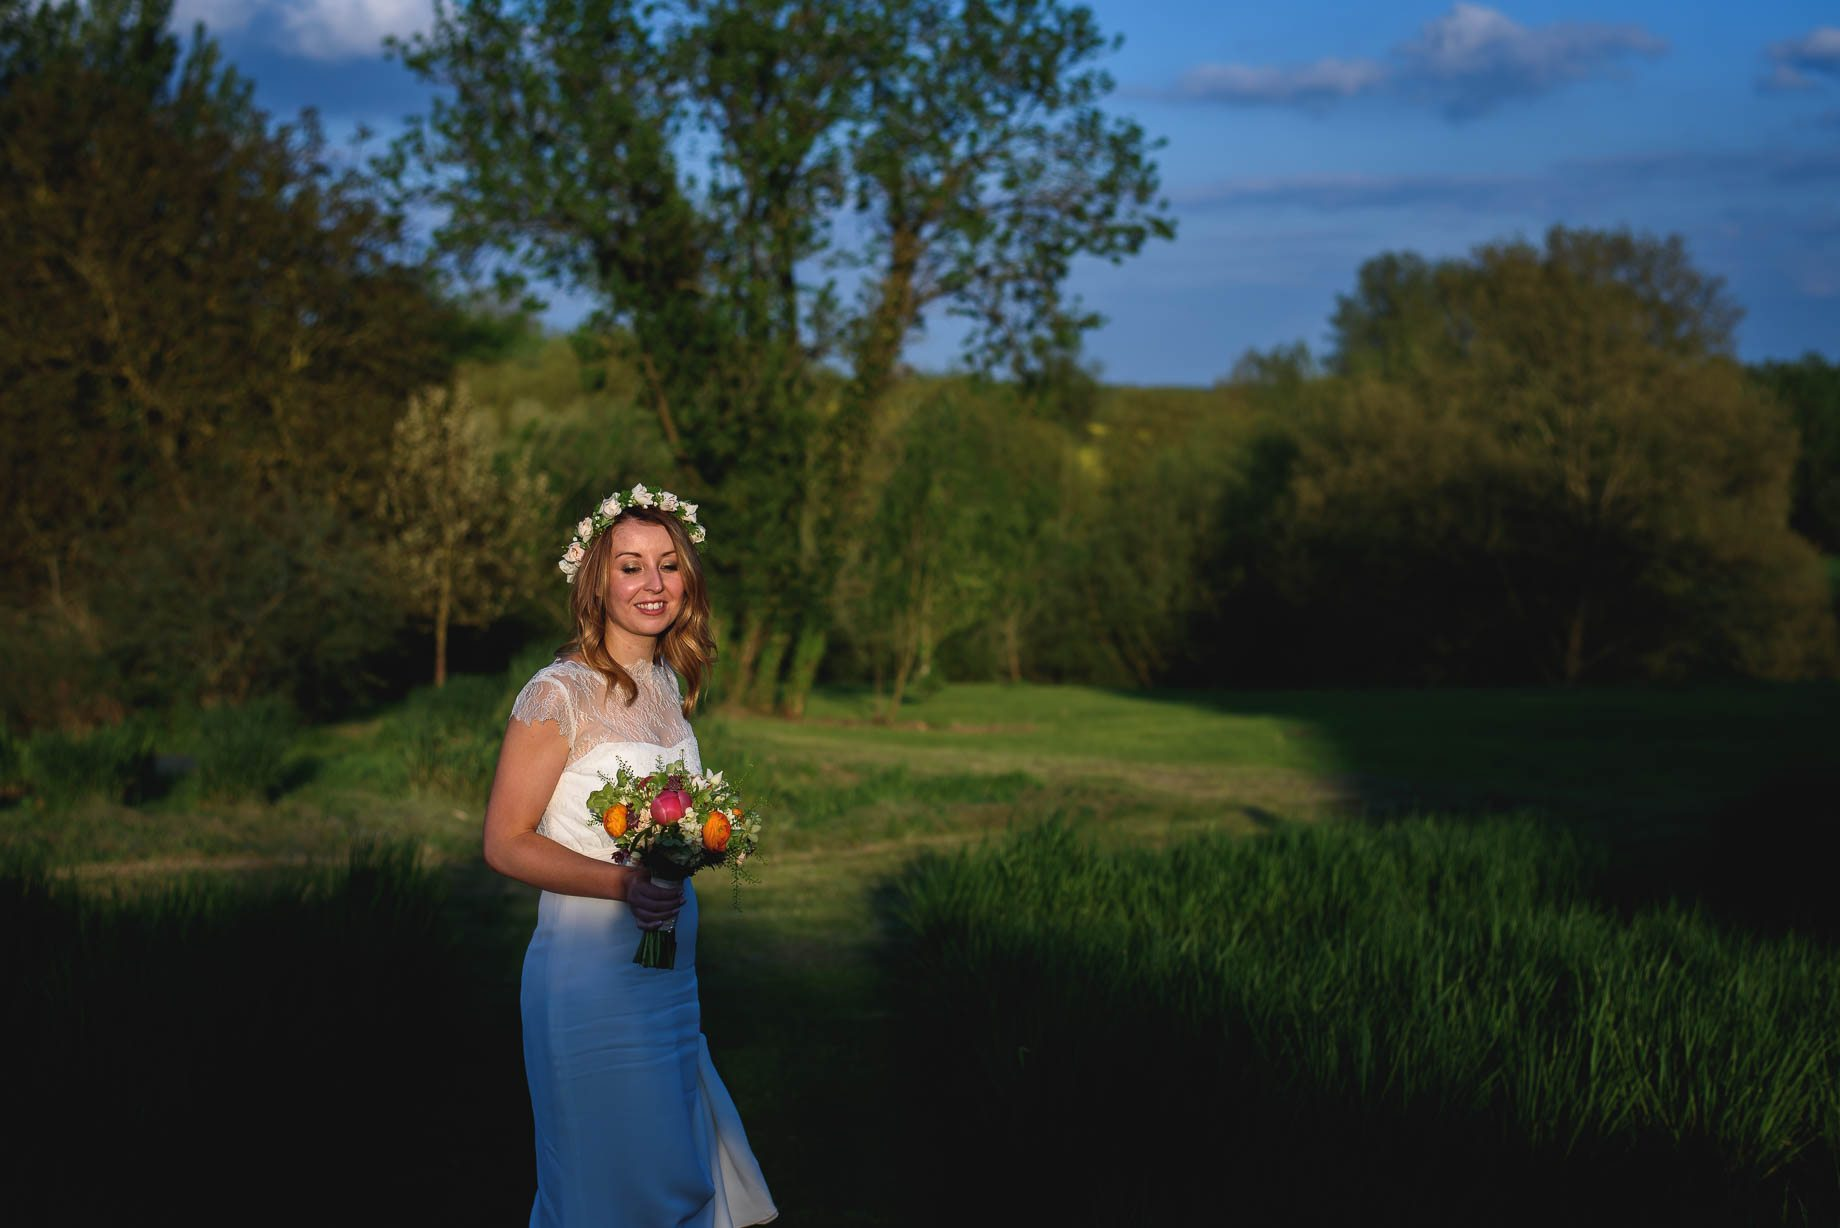 Bury Court Barn wedding photography by Guy Collier - Jo and Jamie (136 of 160)